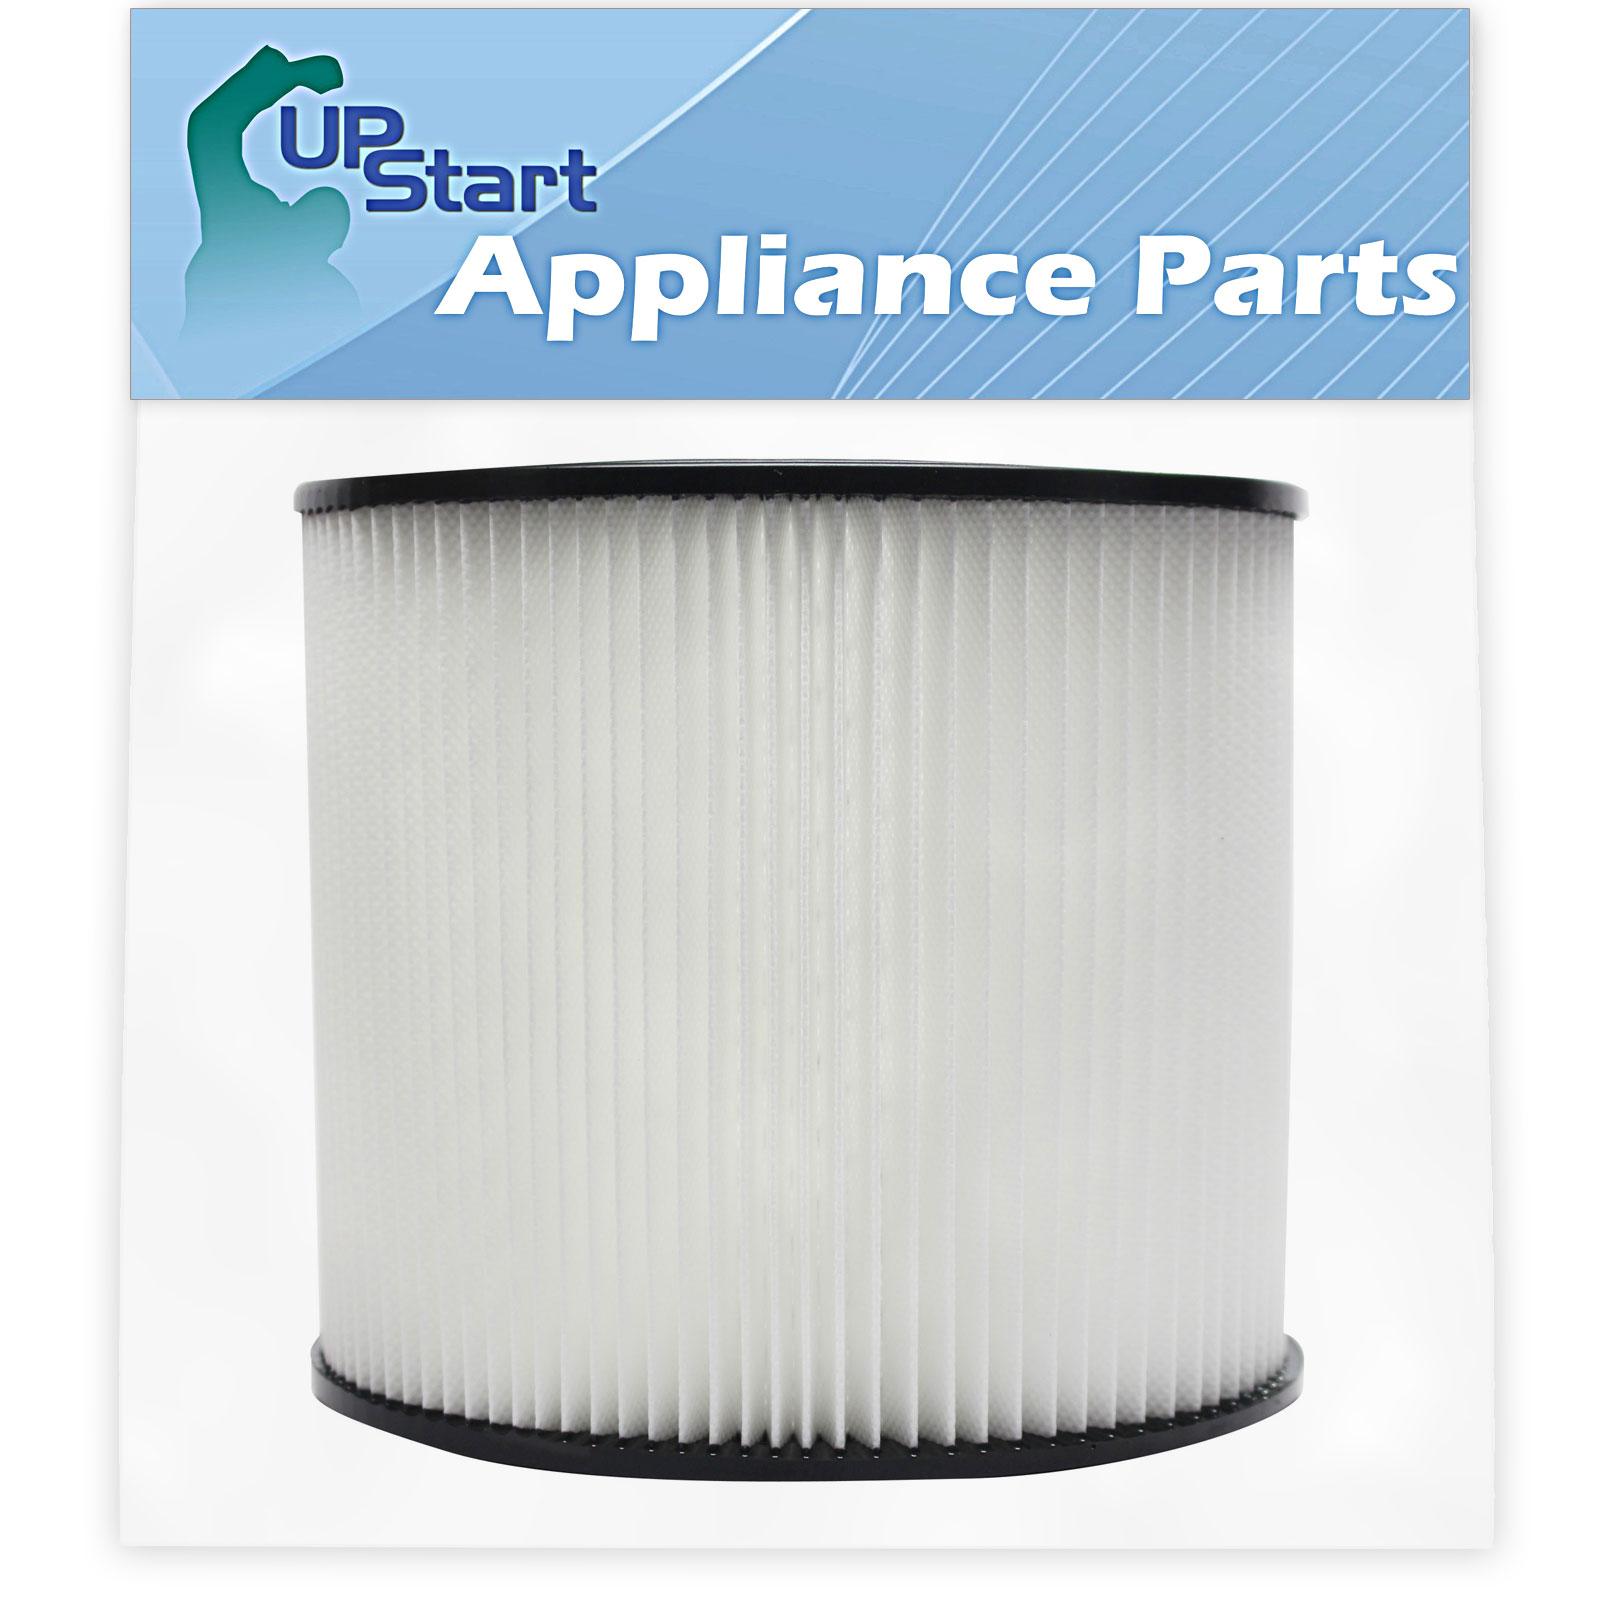 Replacement Shop-Vac BullDog 587-08-00 Vacuum Cartridge Filter - Compatible Shop-Vac 90304 Cartridge Filter - image 4 of 4